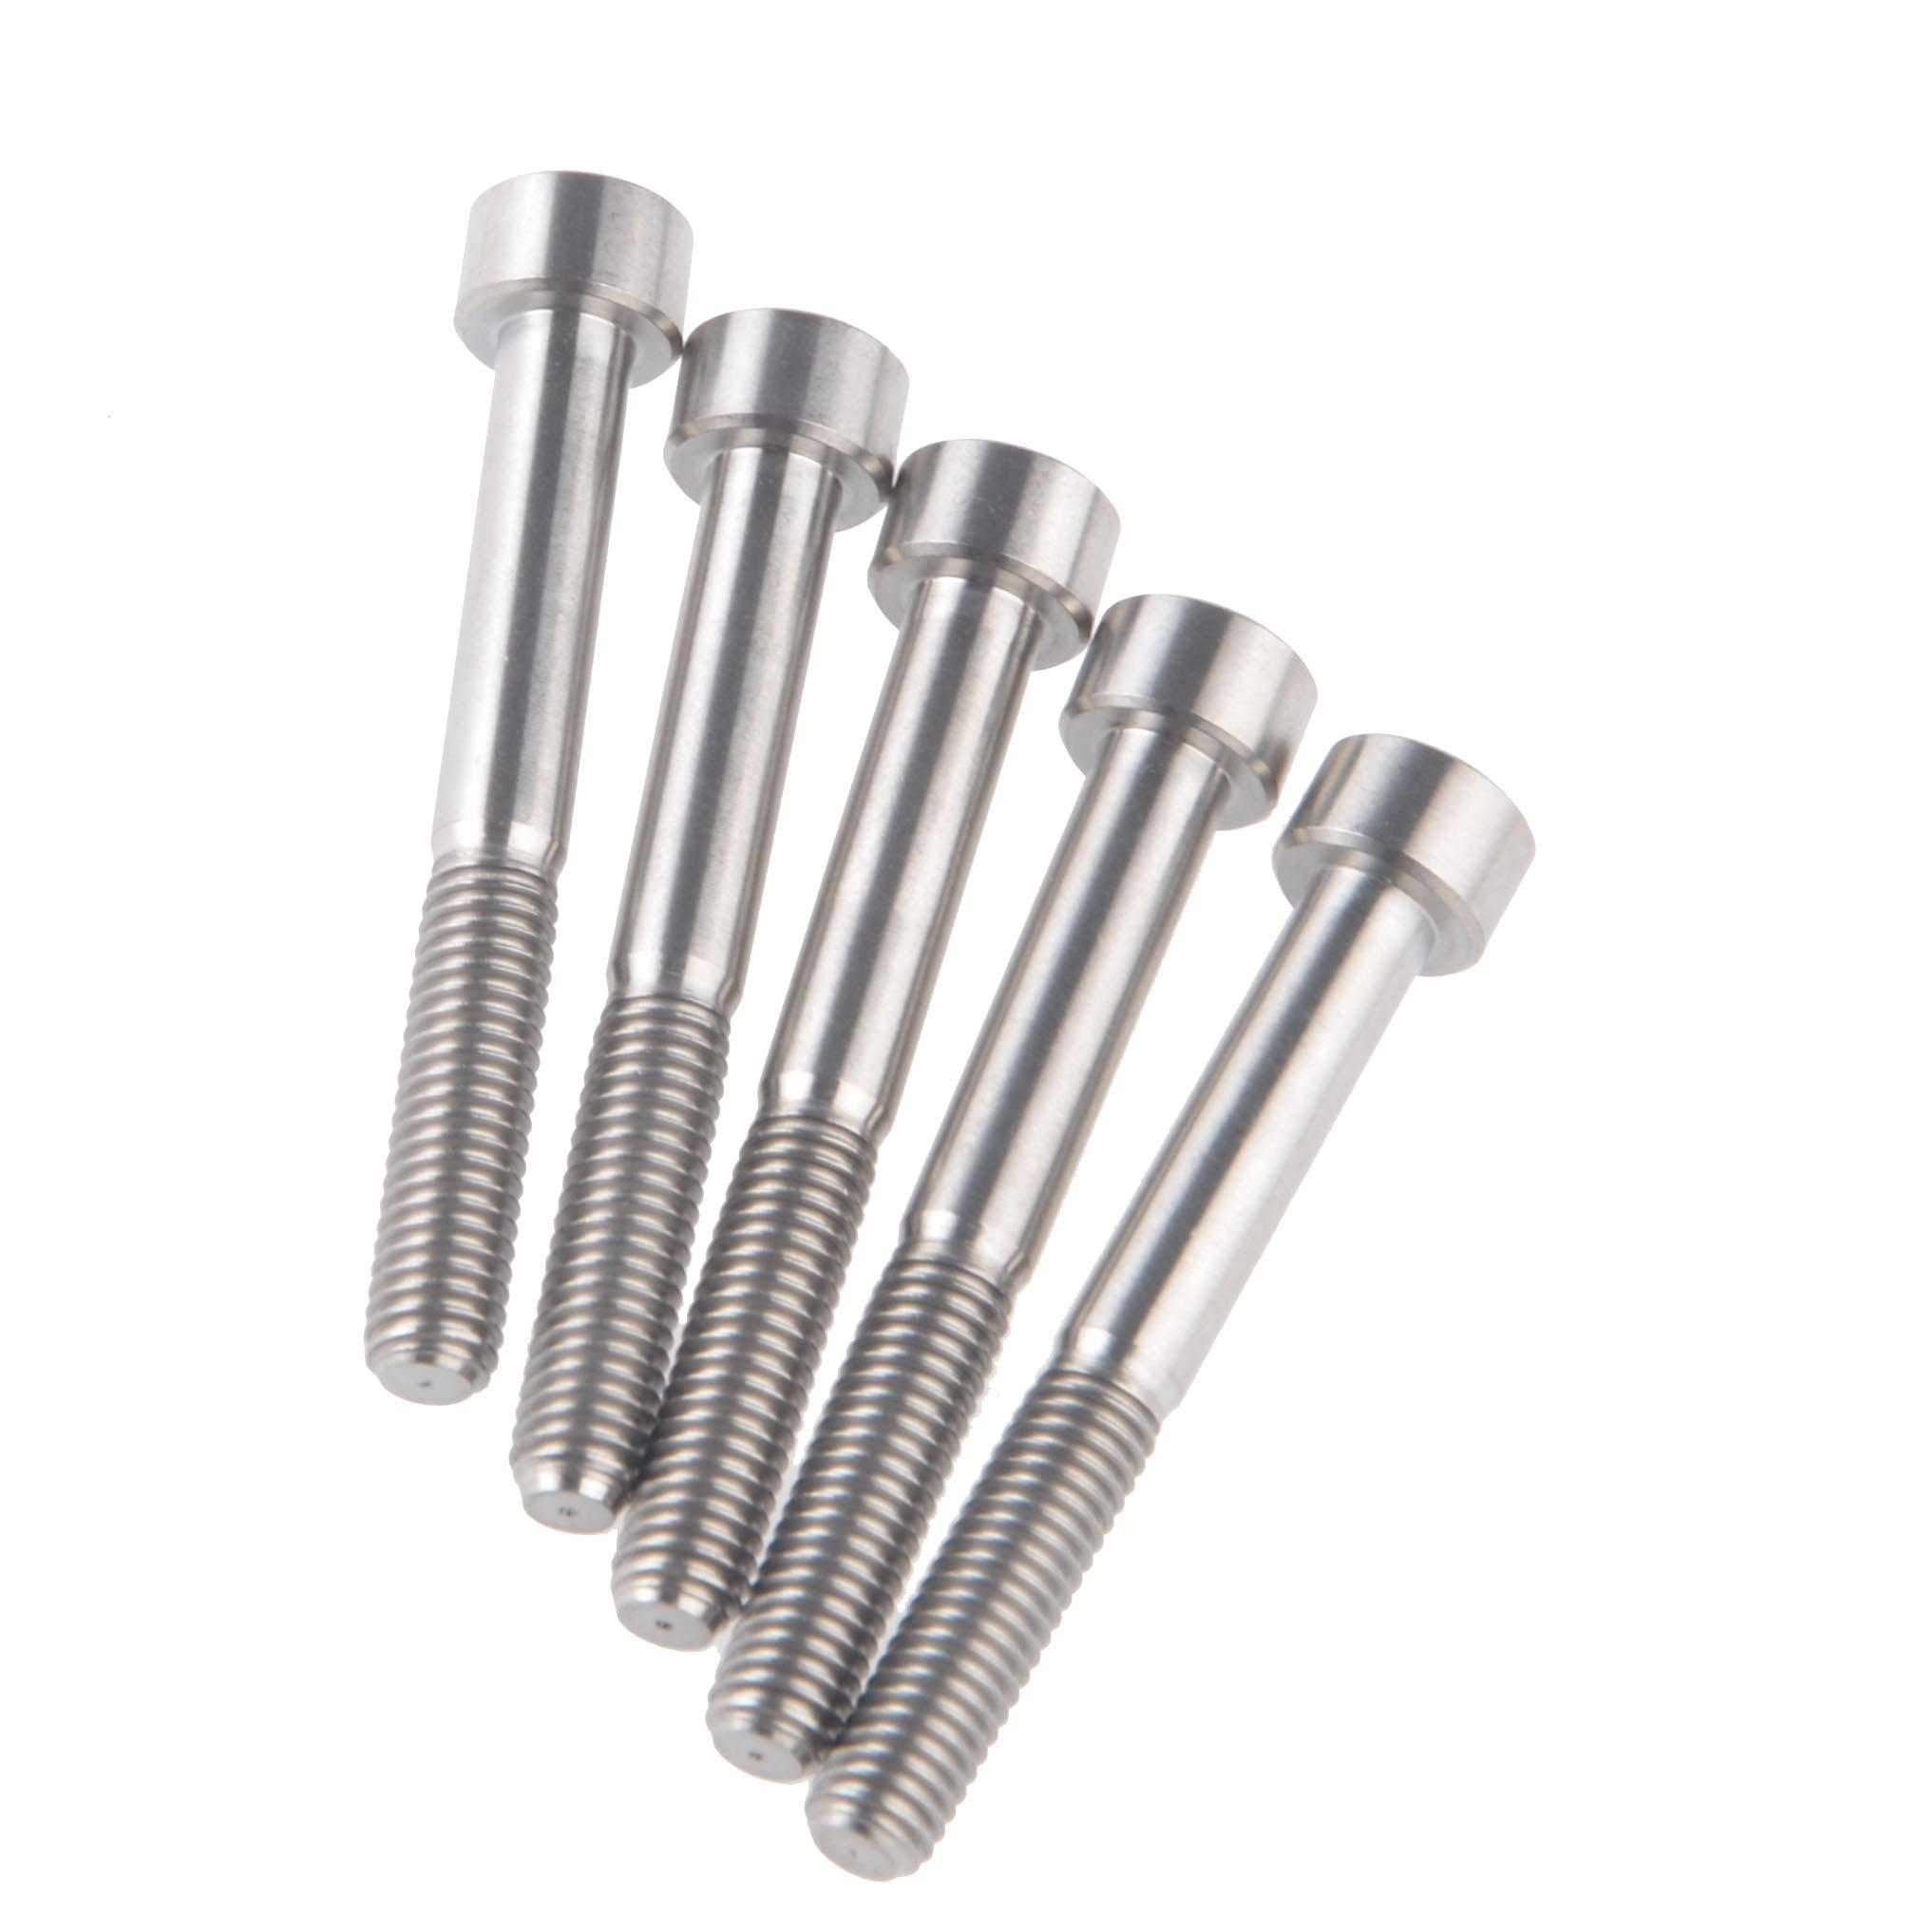 5pcs M6 x 50mm DIN912 Titanium Ti Screw Bolt Allen Hex Socket Cap Head